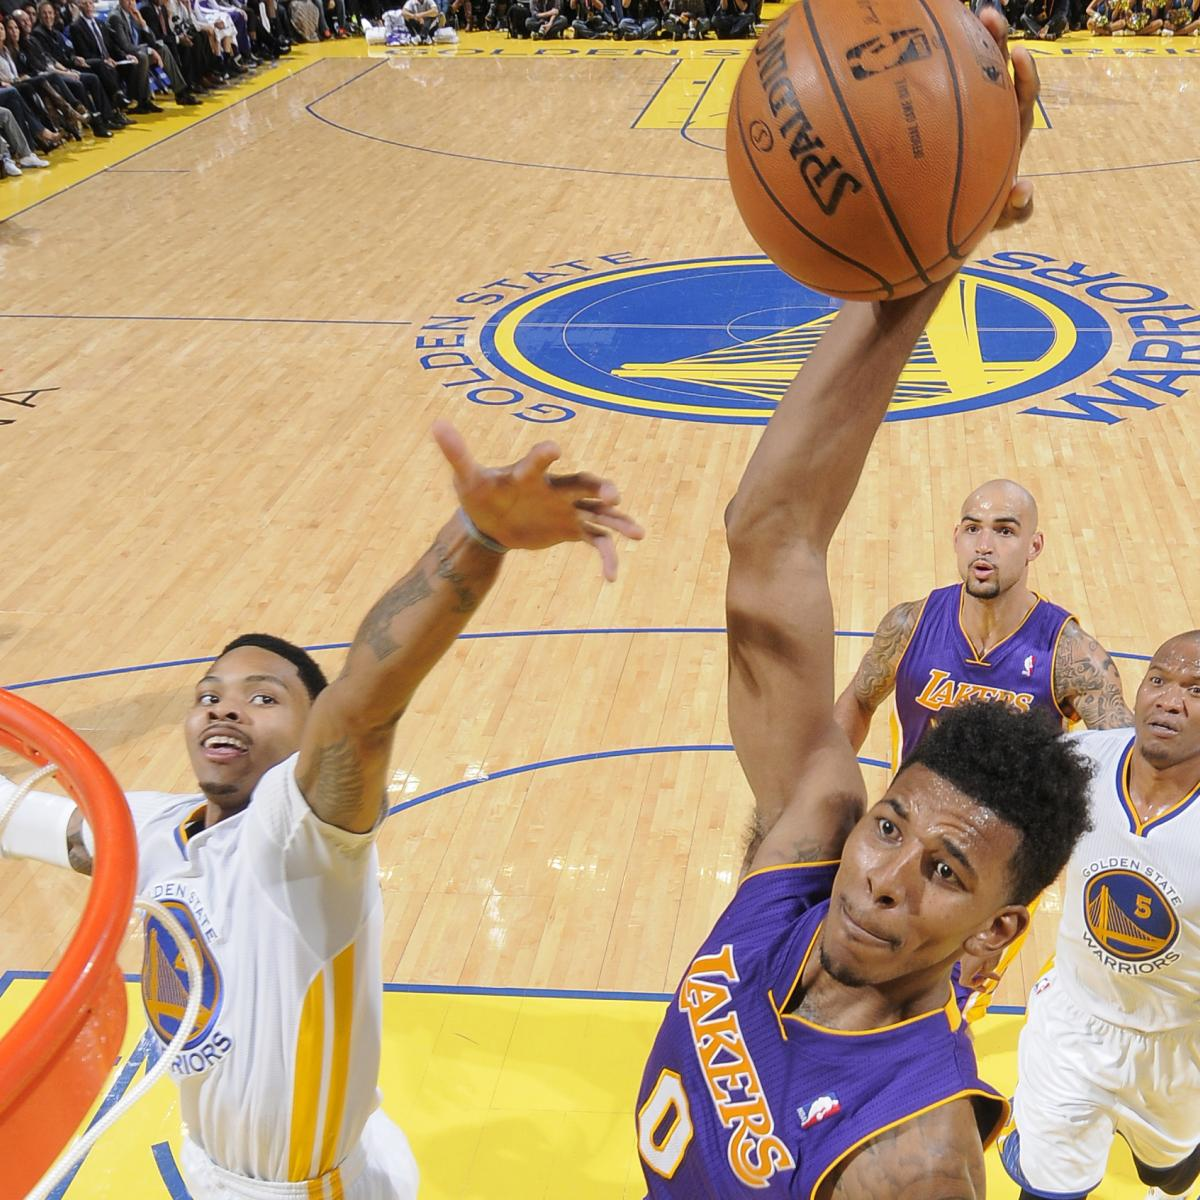 56c8964806f8 9 Takeaways from Saturday s NBA Action